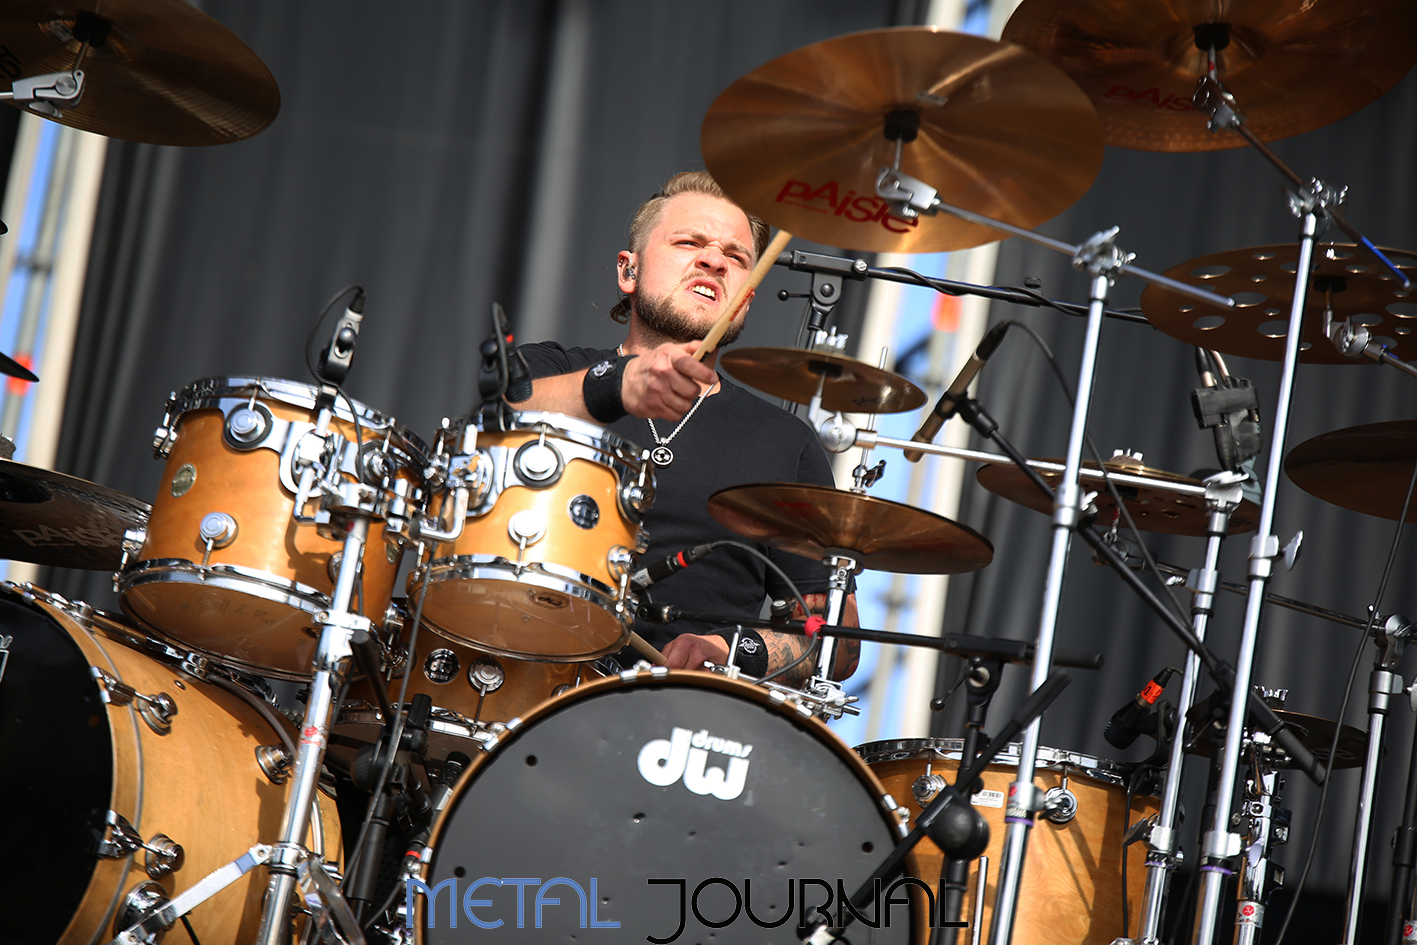 udo metal journal rock the coast 2019 pic 9